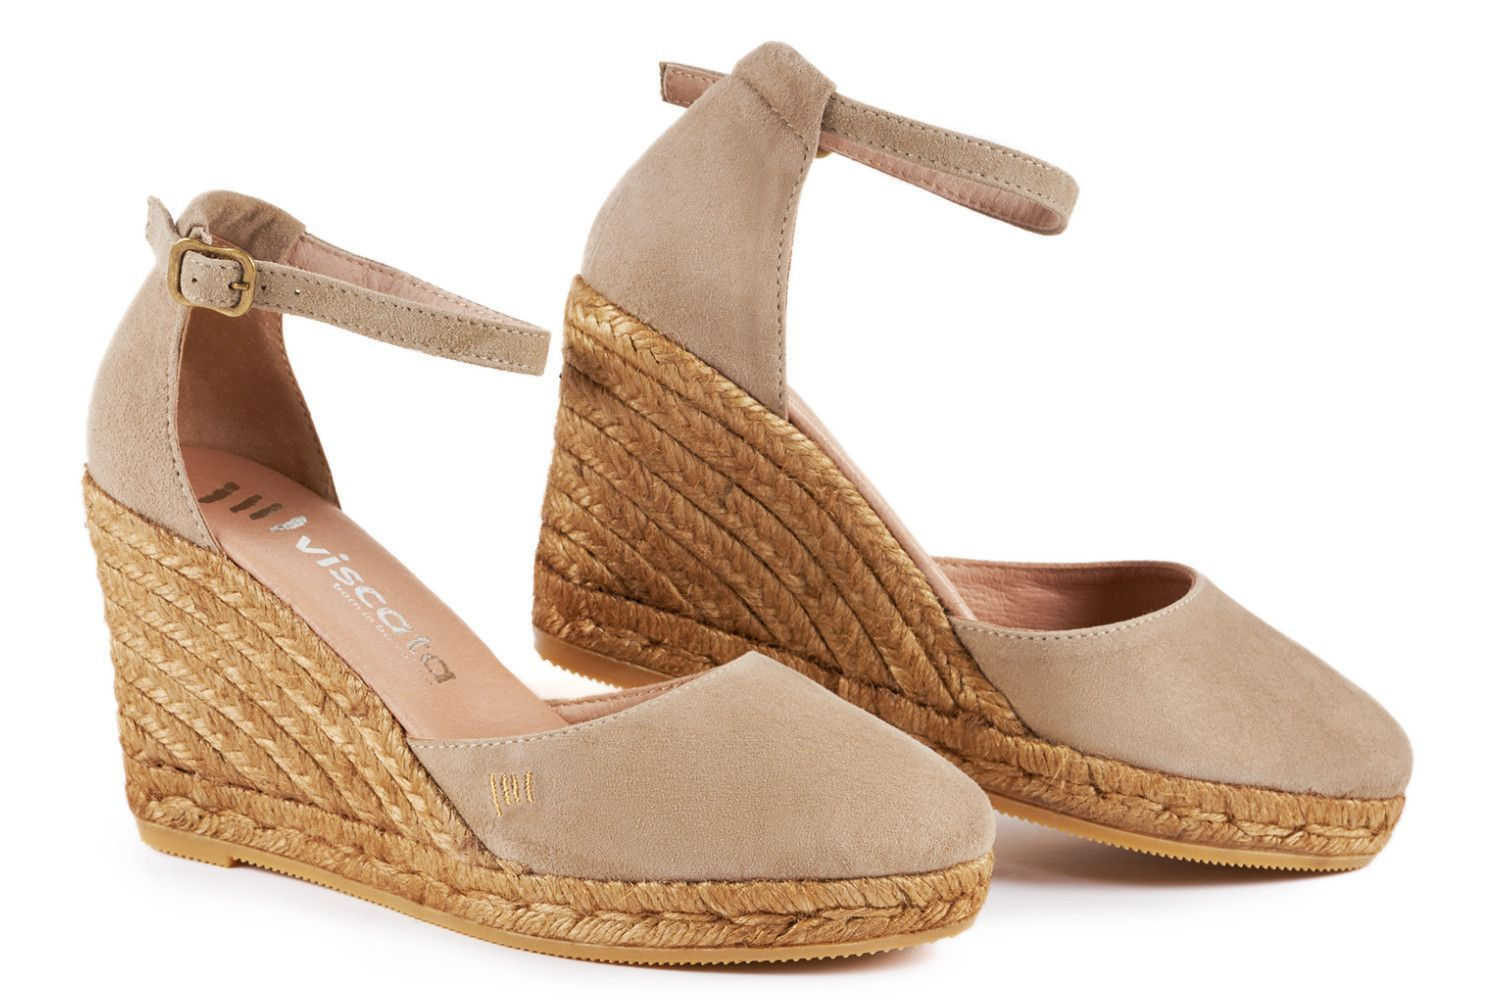 662a81a3955 Palamos Suede Wedges - Nude | Shoessss | Espadrilles, Soft suede ...